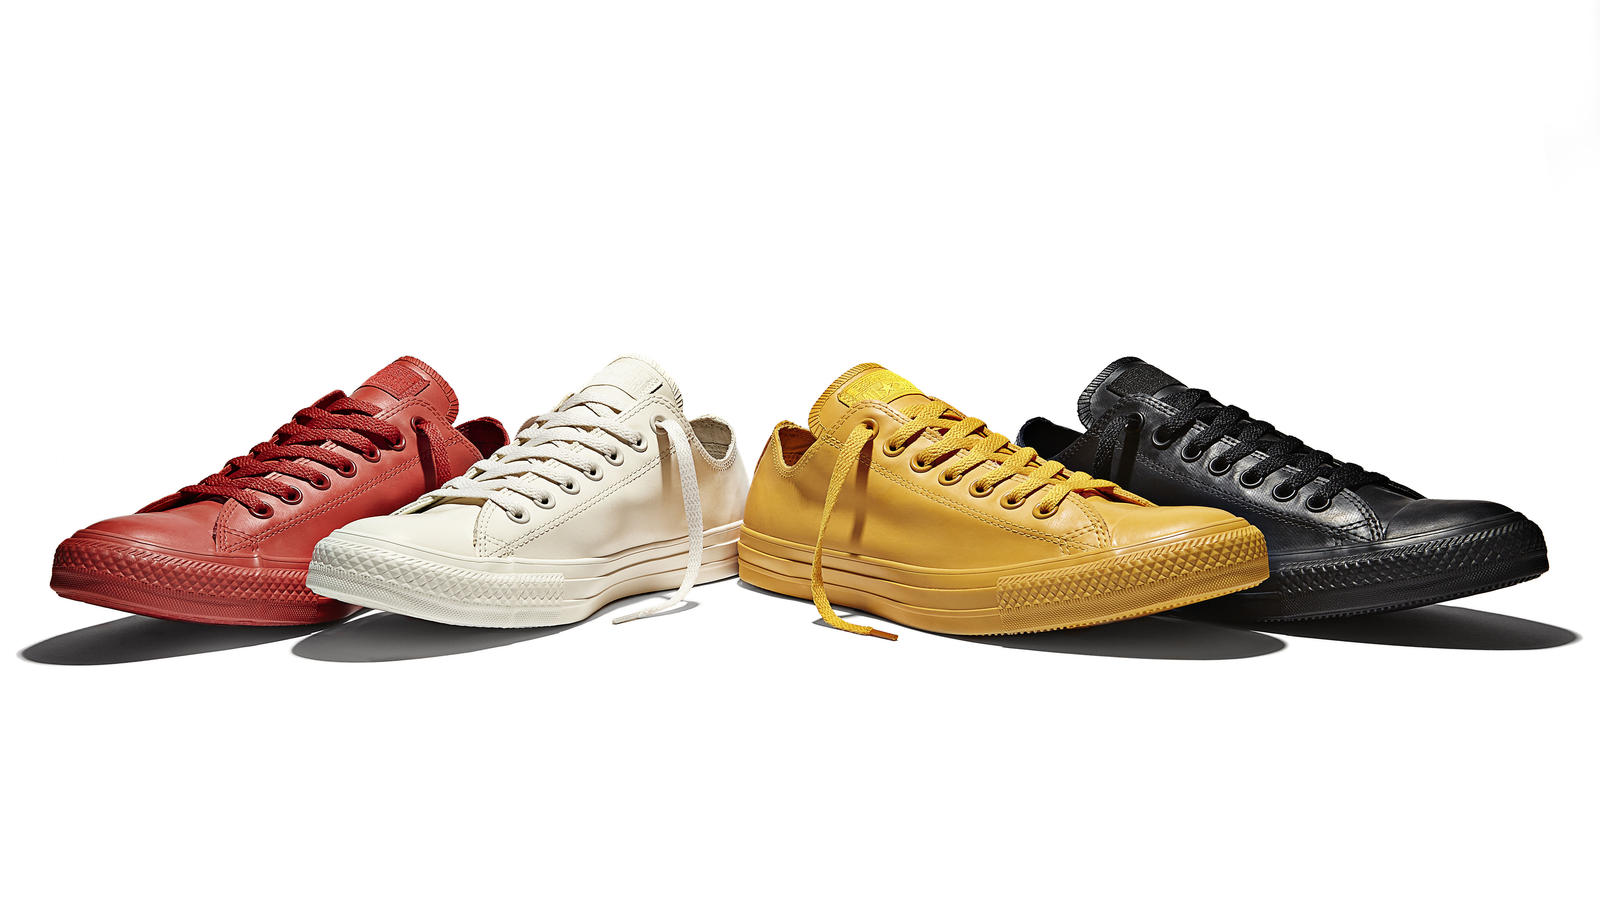 Converse Chuck Taylor All Star Ox   Group Original